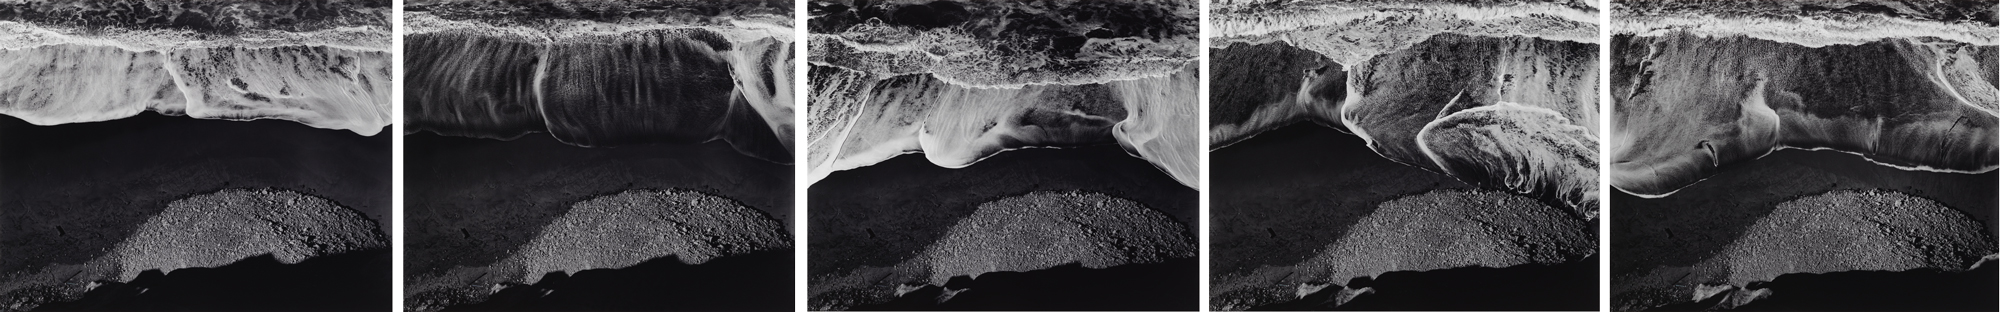 Ansel Adams, Surf Sequence, 1940; promised gift of Launny and Weezie Steffens; © The Ansel Adams Publishing Rights Trust; photo: Don Ross